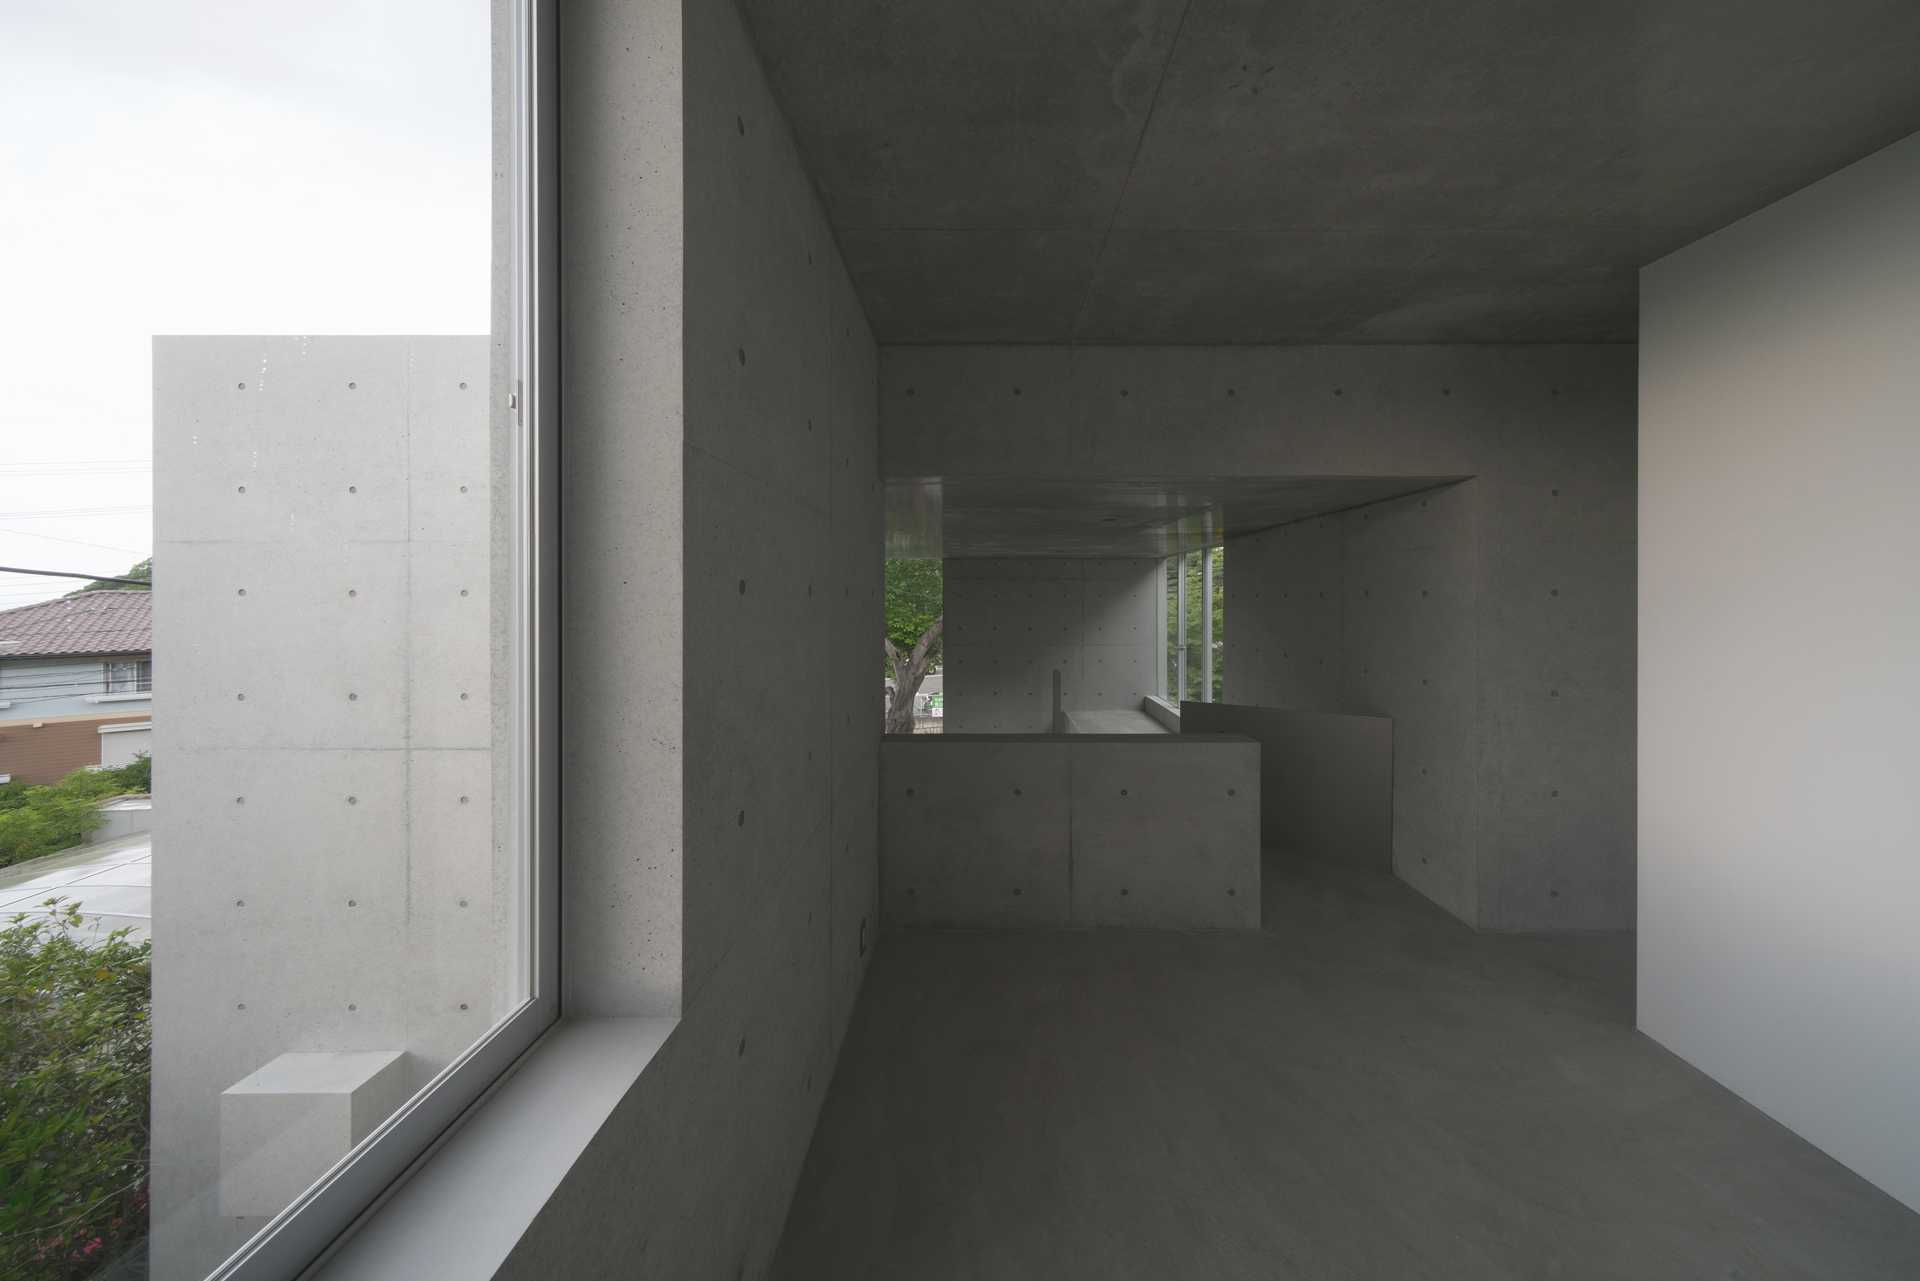 Concrete House  - 12 14 48